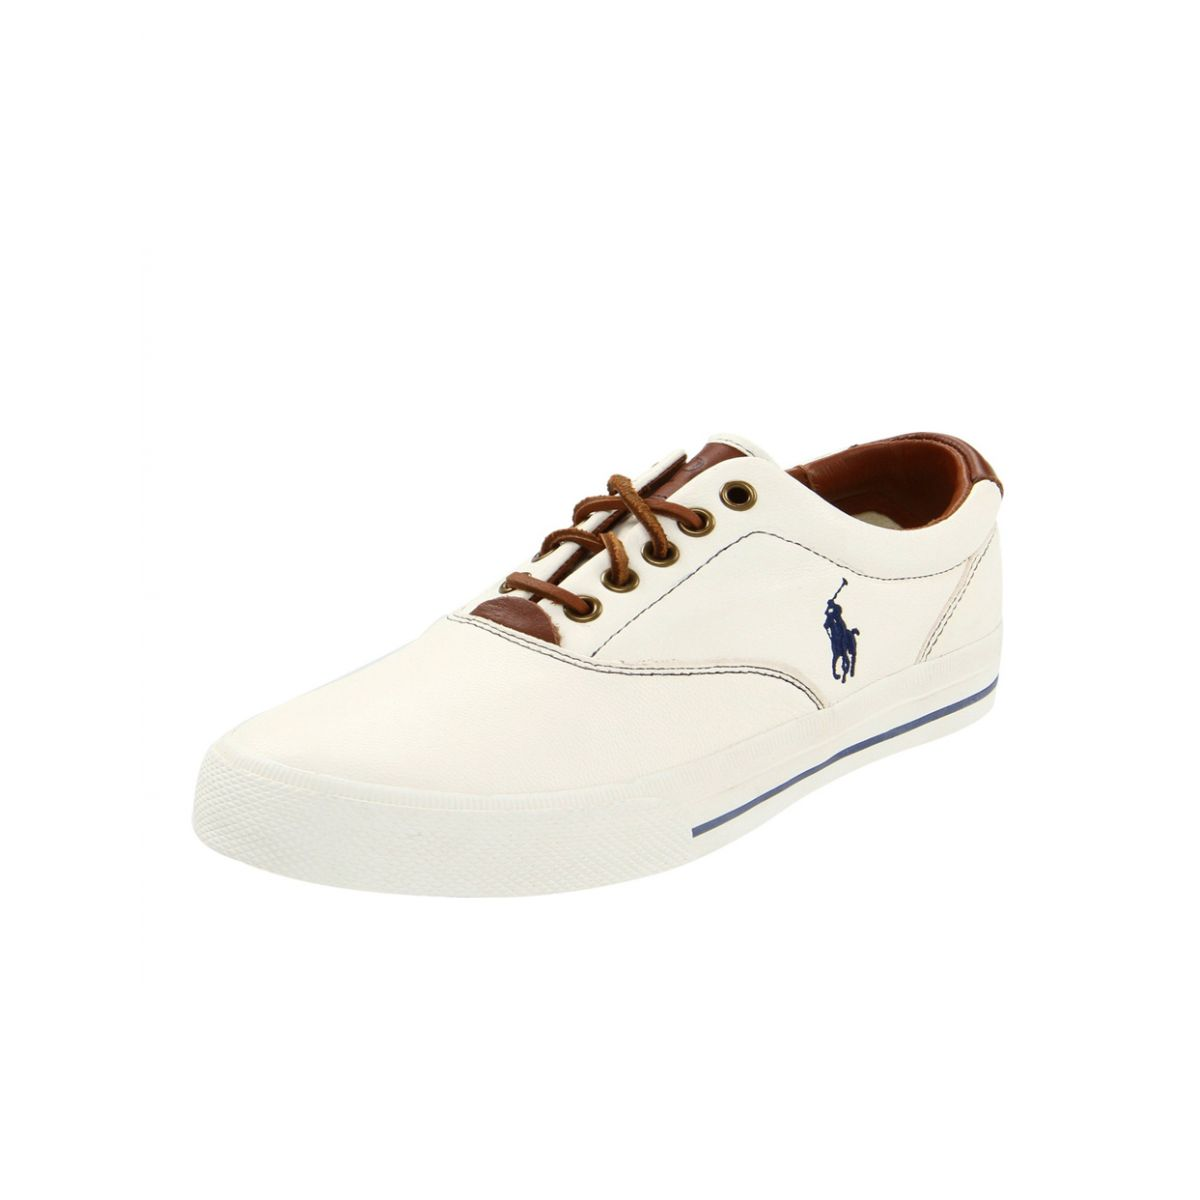 TÊNIS Polo Ralph Lauren Couro Branco Ralph Lauren Masculino Outlet ... 5bb61cfed18